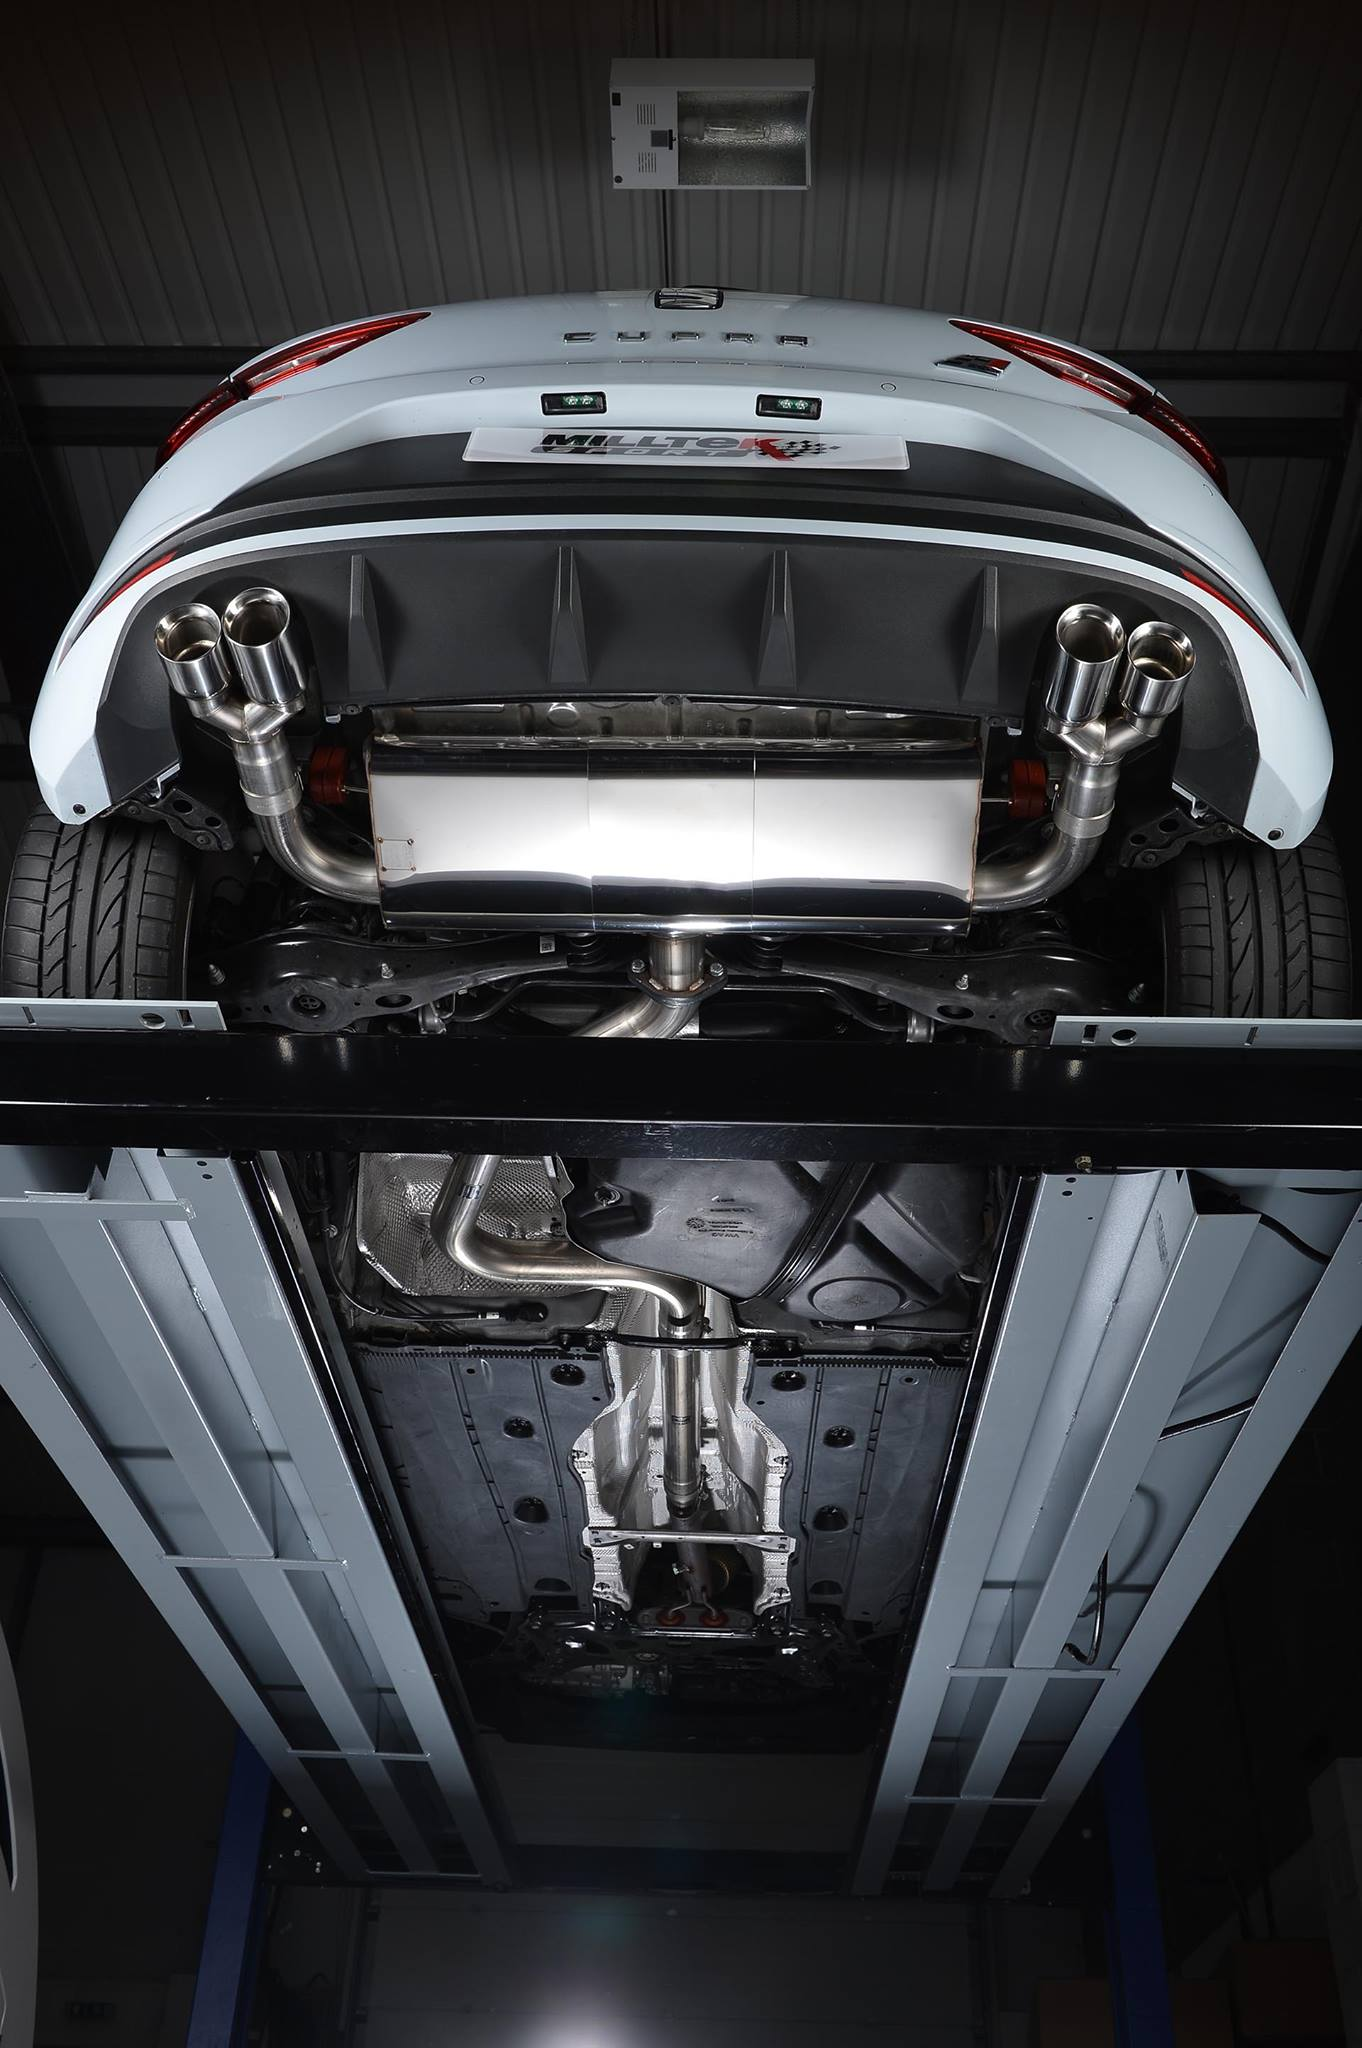 Range Rover Sport >> SEAT Leon Cupra 280 PS Gets Milltek Performance Exhaust ...